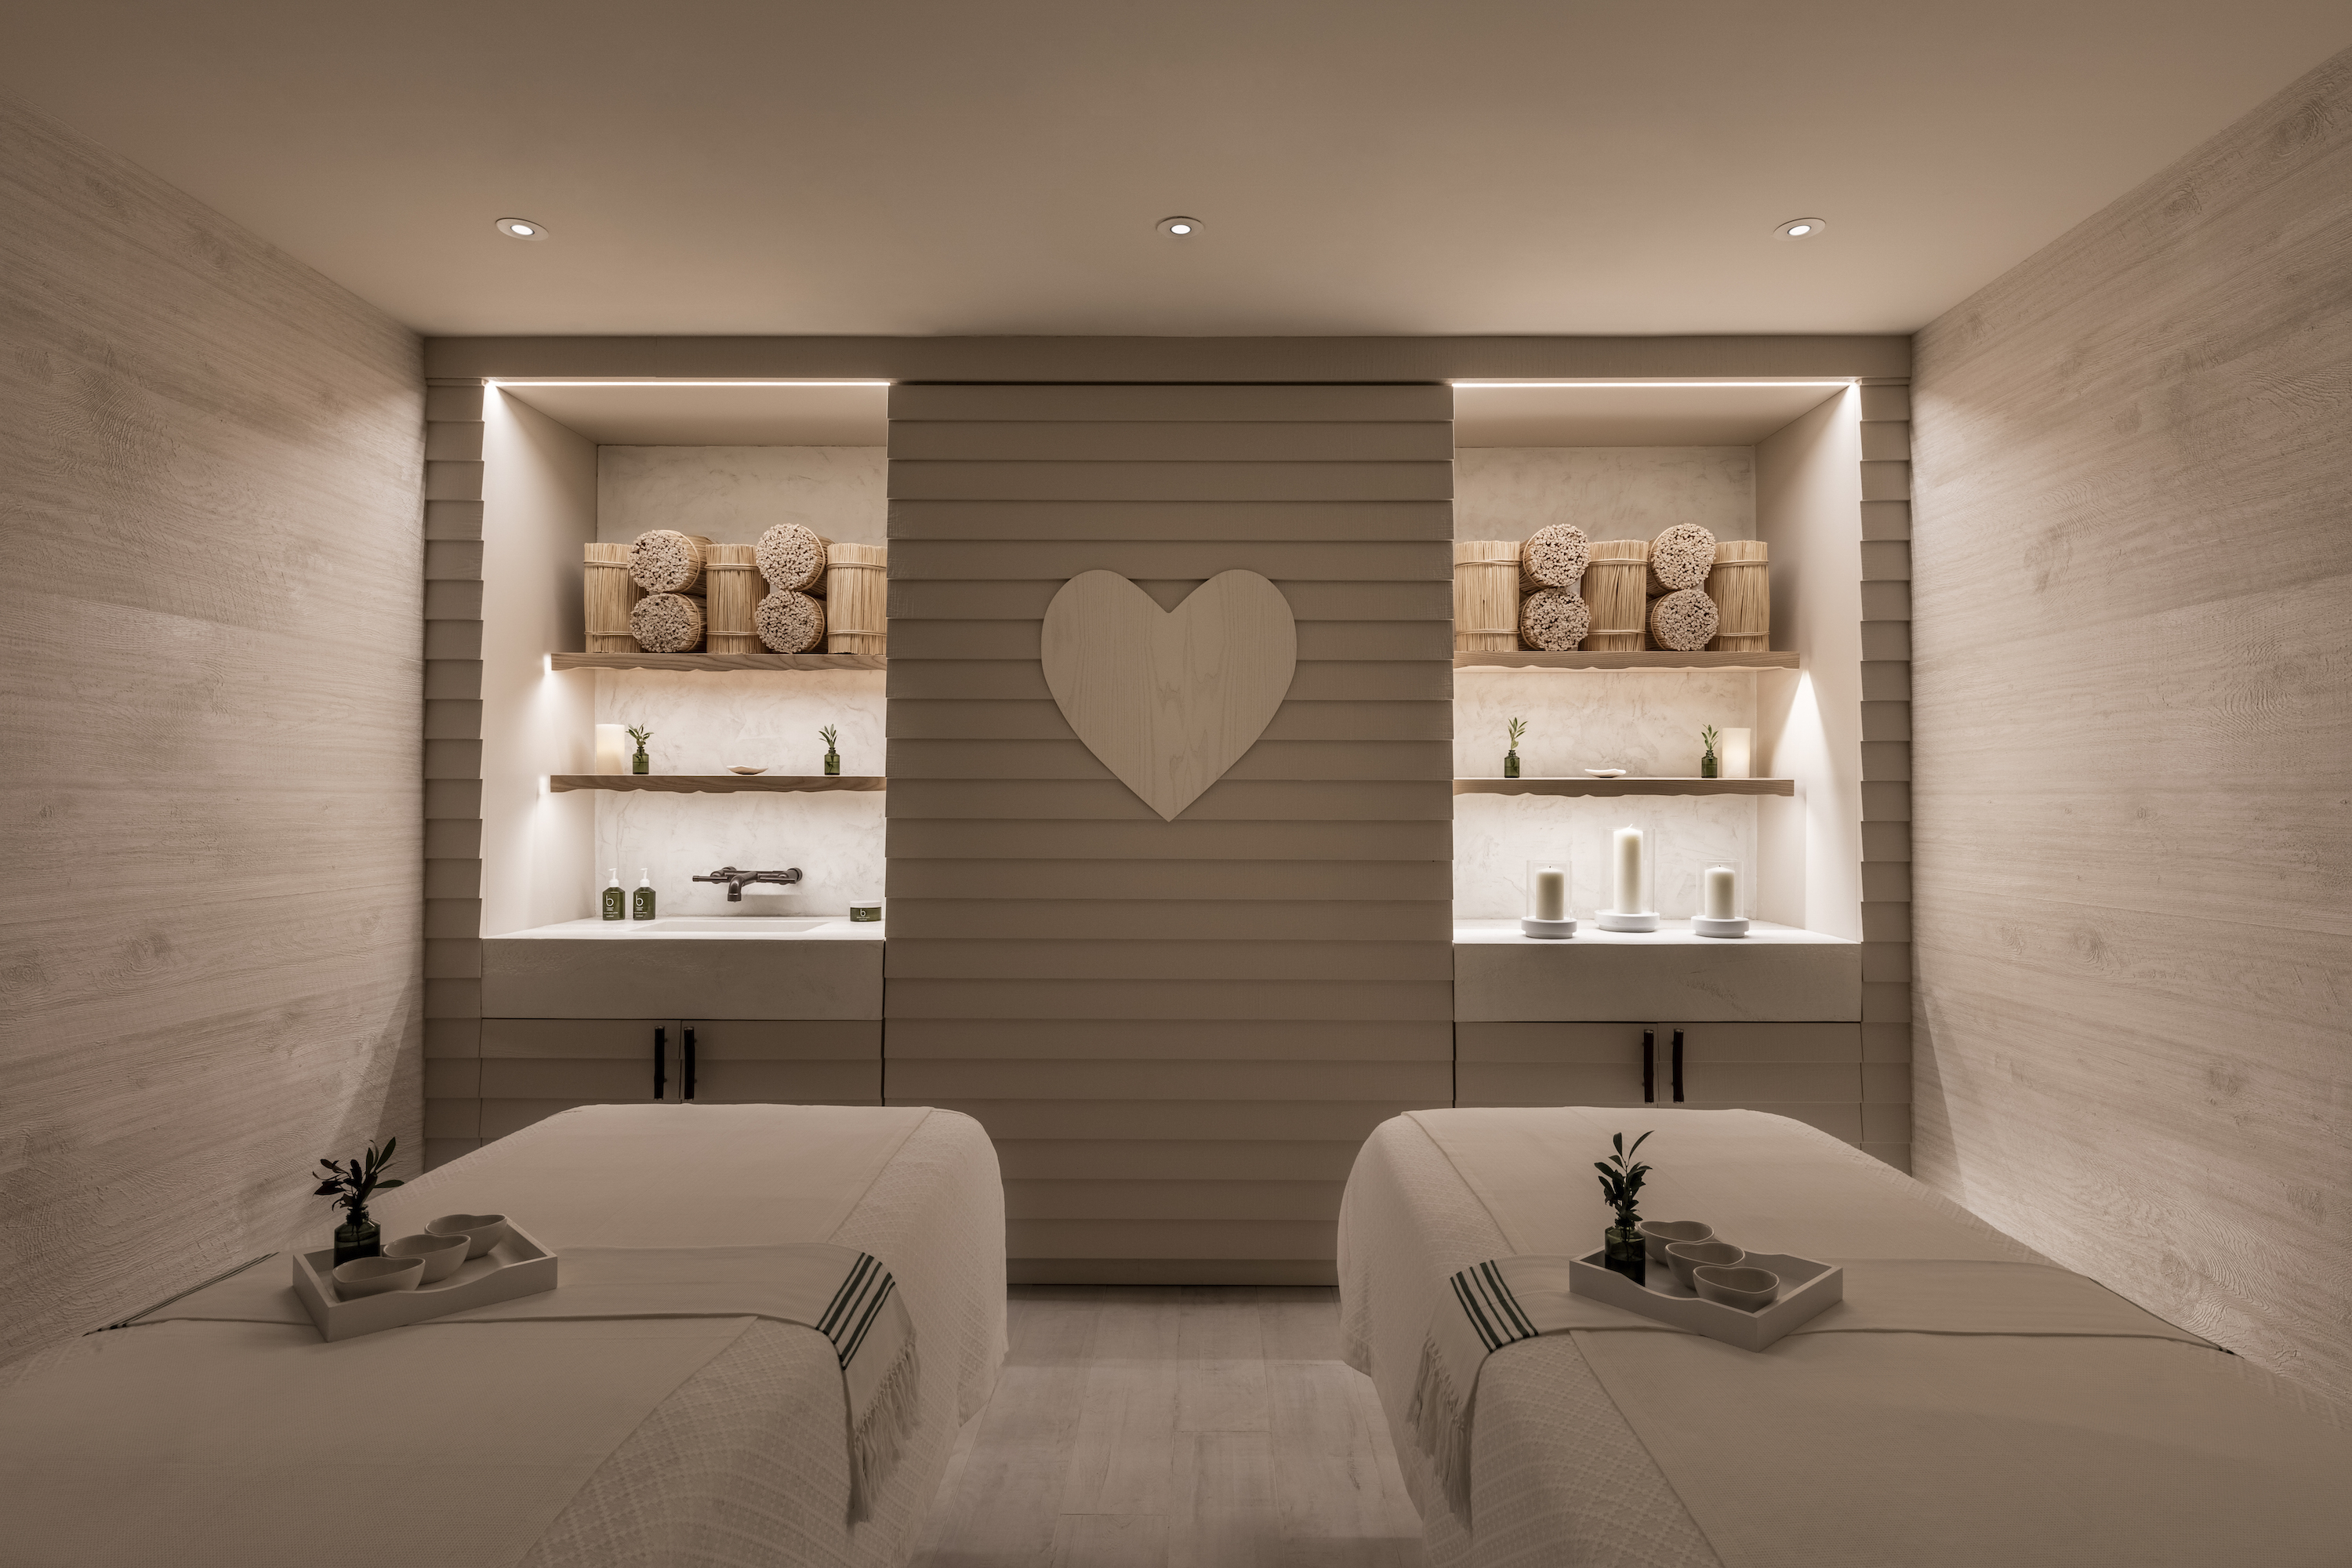 Salon Massage Paris 20 22 Best Spas In Nyc For Massages Manicures And Facials